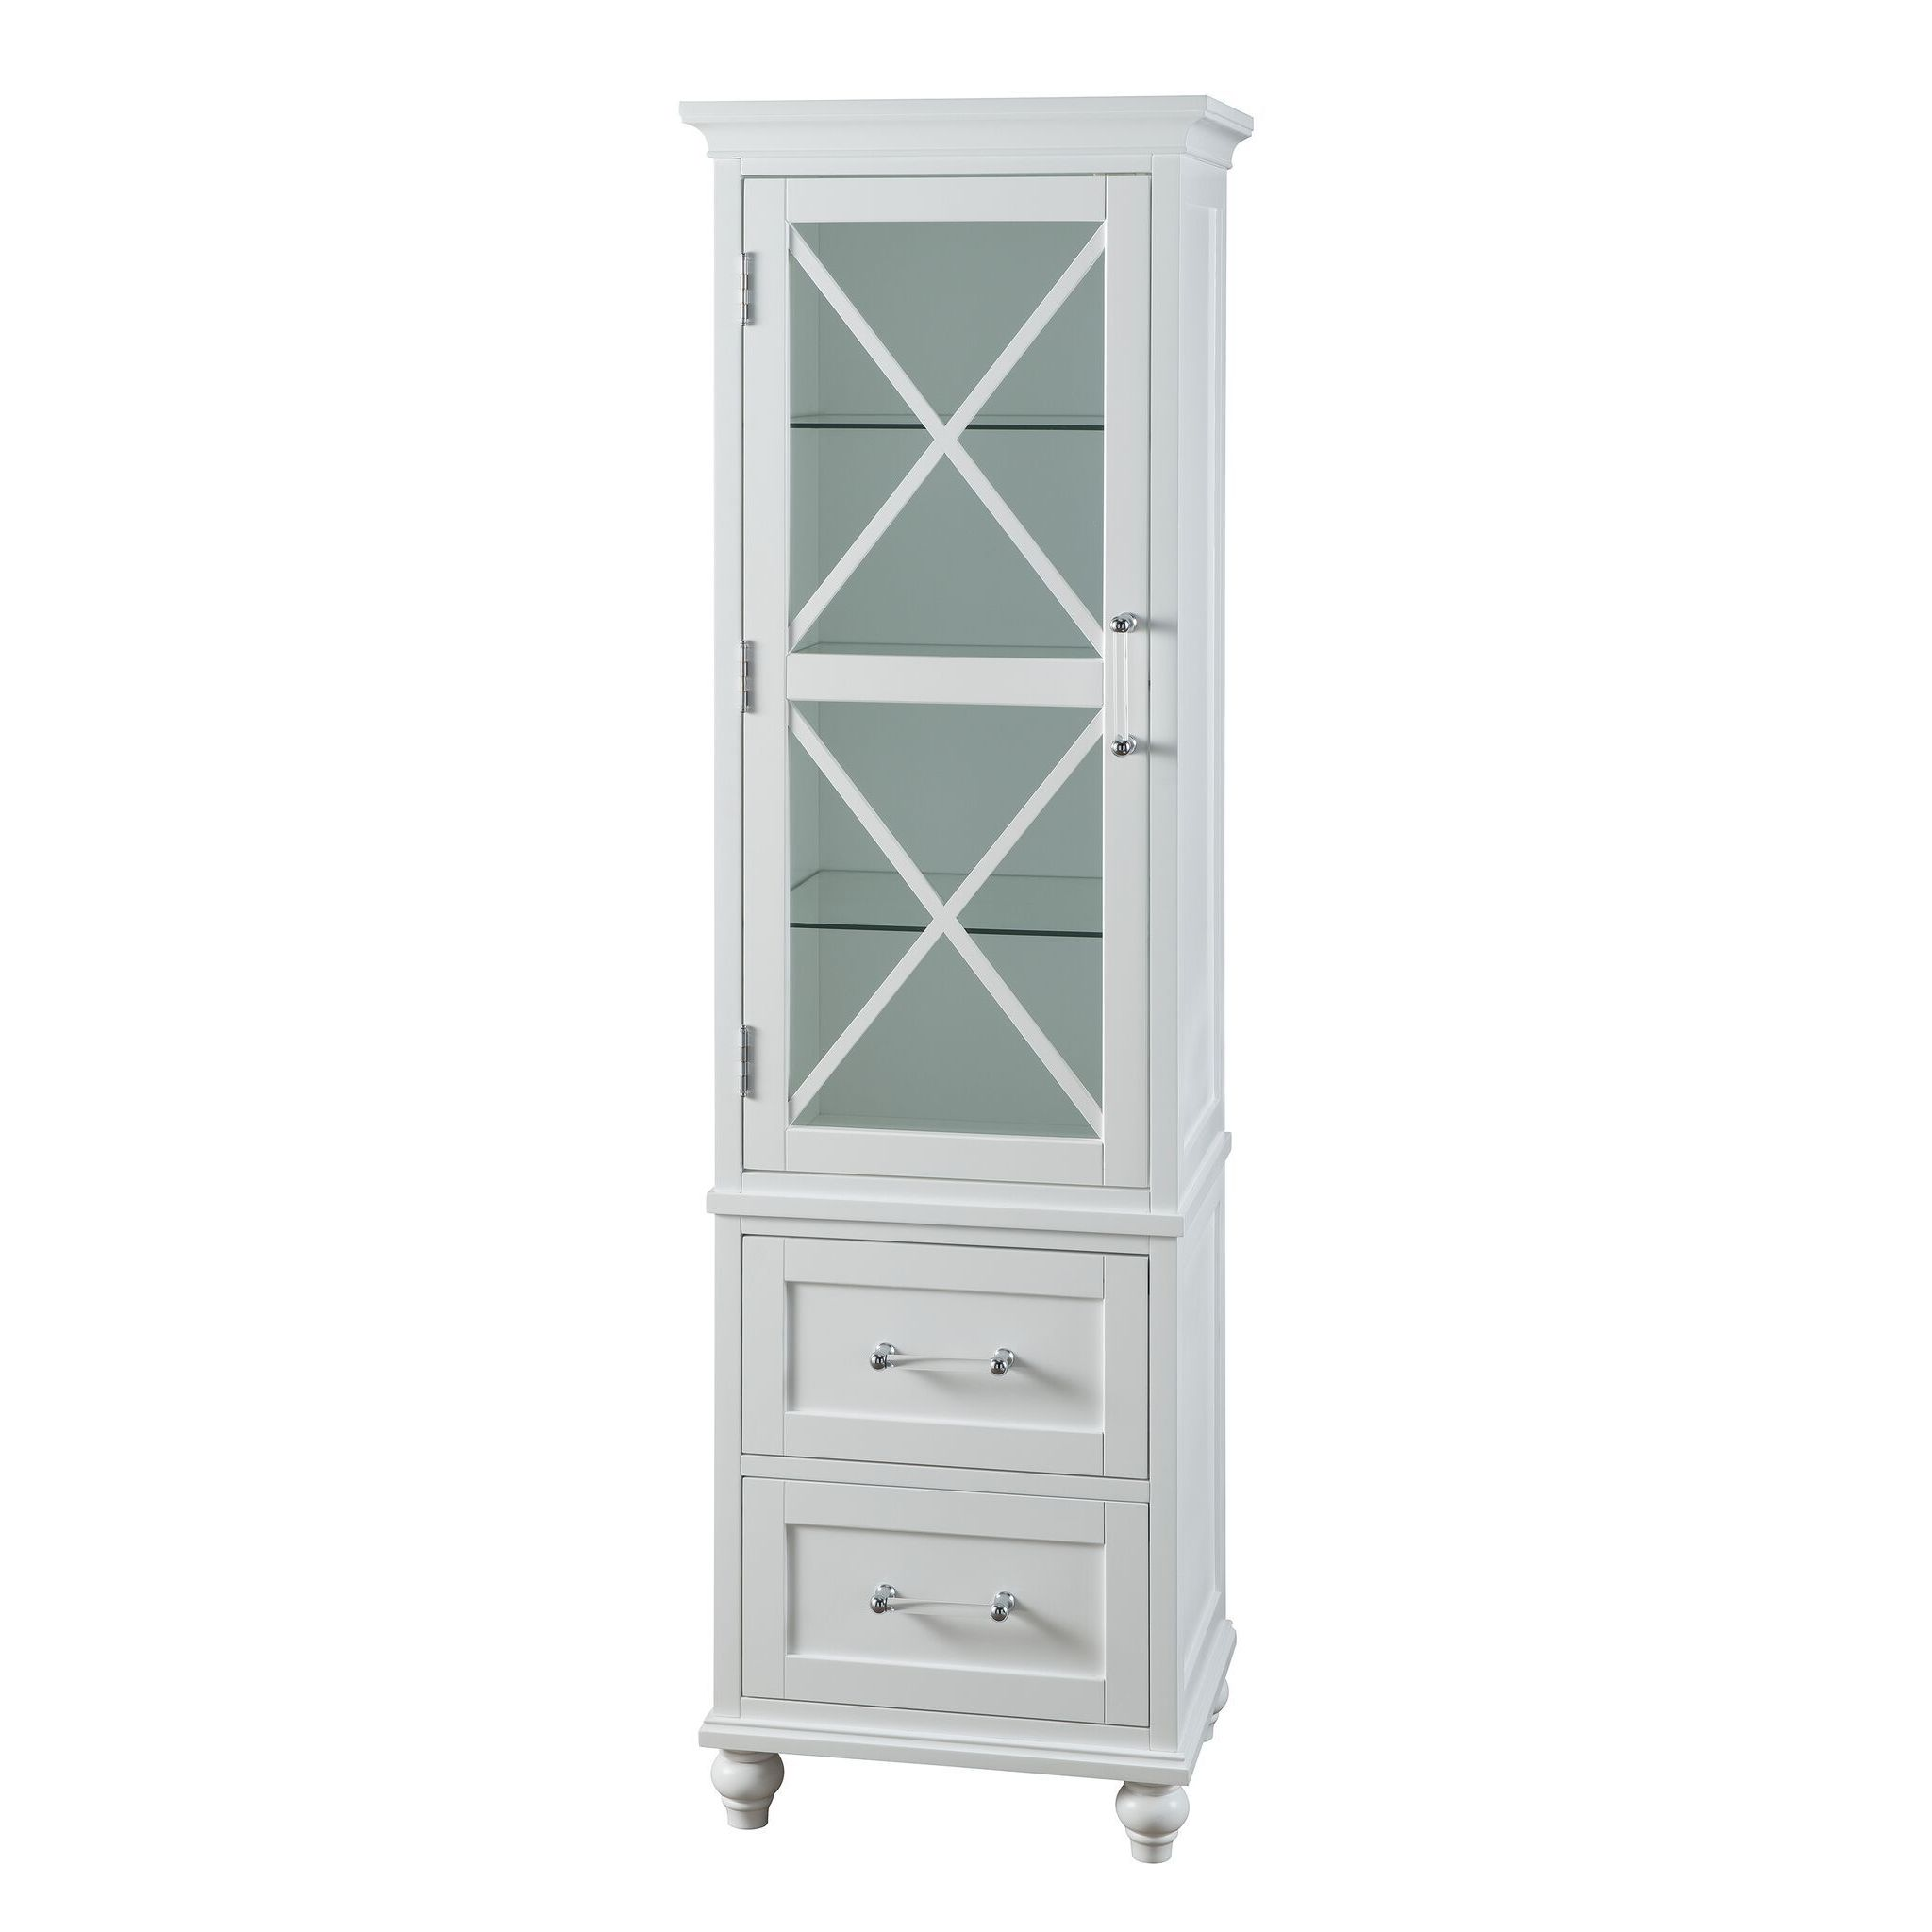 Buy 12-24 Inches Bathroom Cabinets & Storage Online at Overstock.com ...